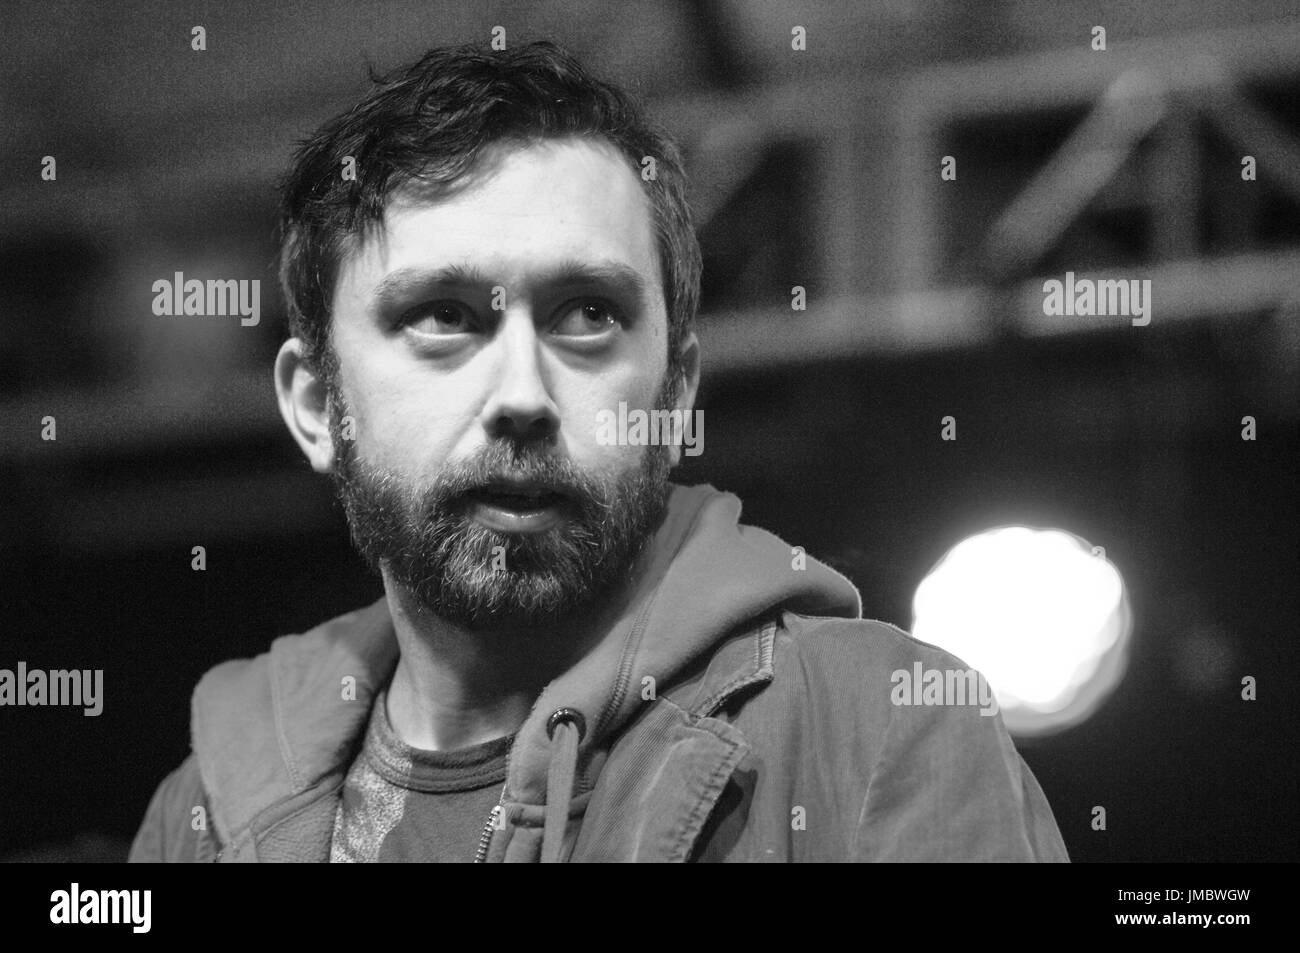 Tim McIlrath Rise Against KROQ air interview 2007 KROQ Almost Acoustic Christmas Gibson Ampitheatre Universal City,Ca. - Stock Image